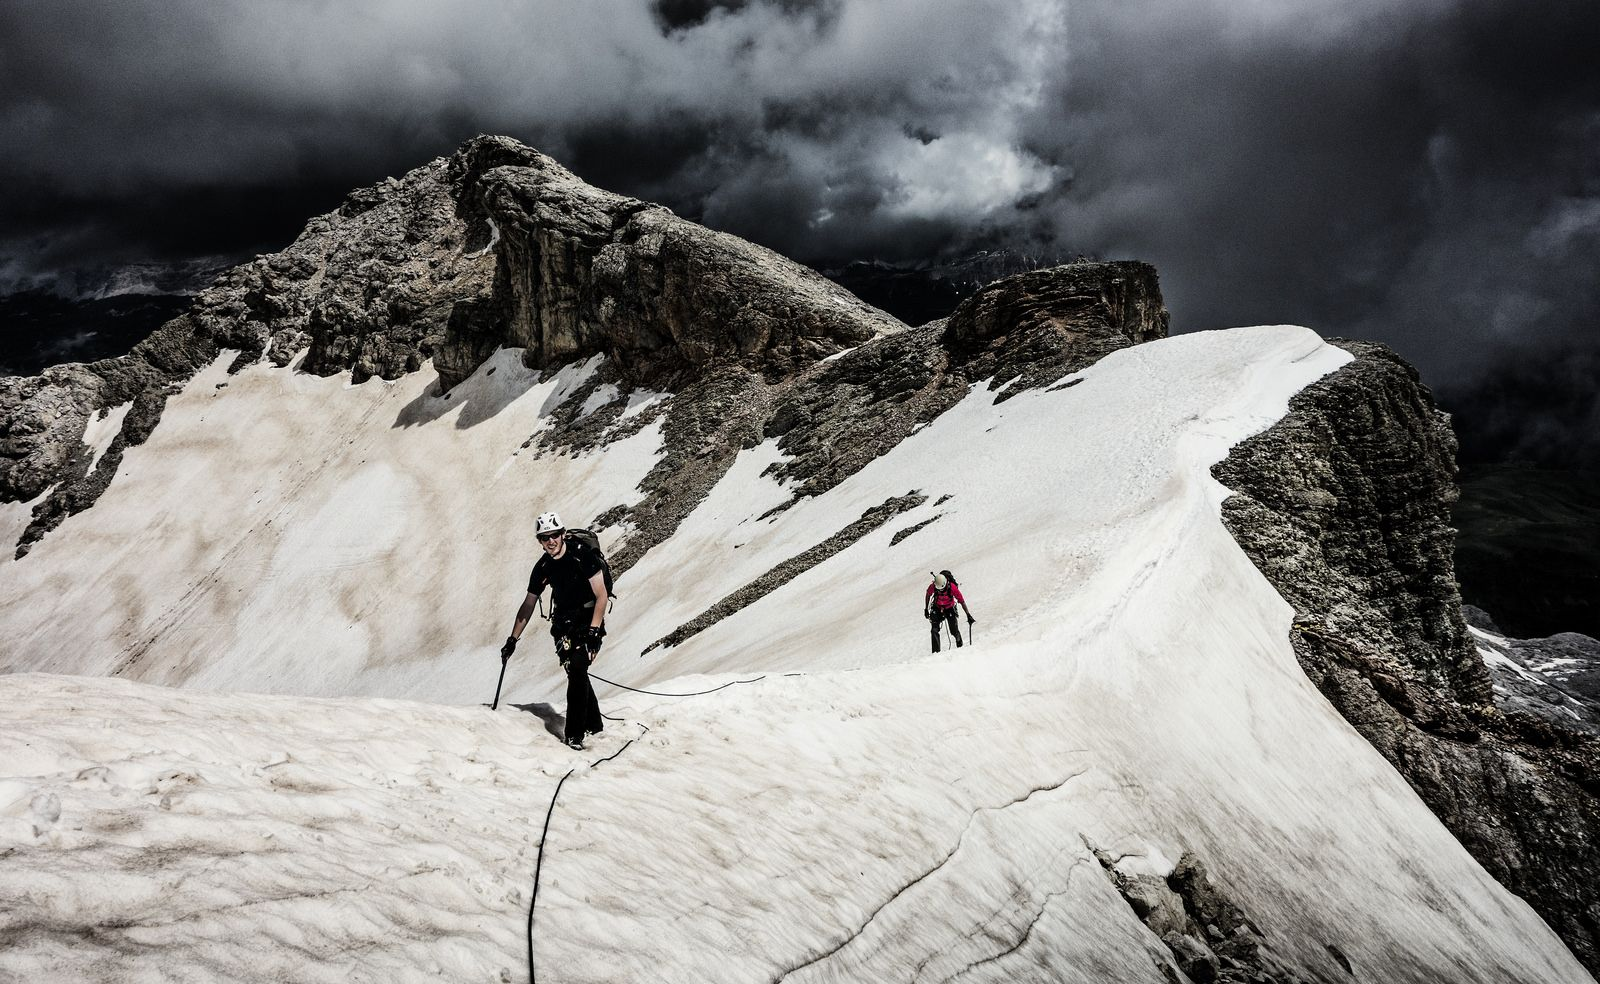 Black Weather in The Dolomites